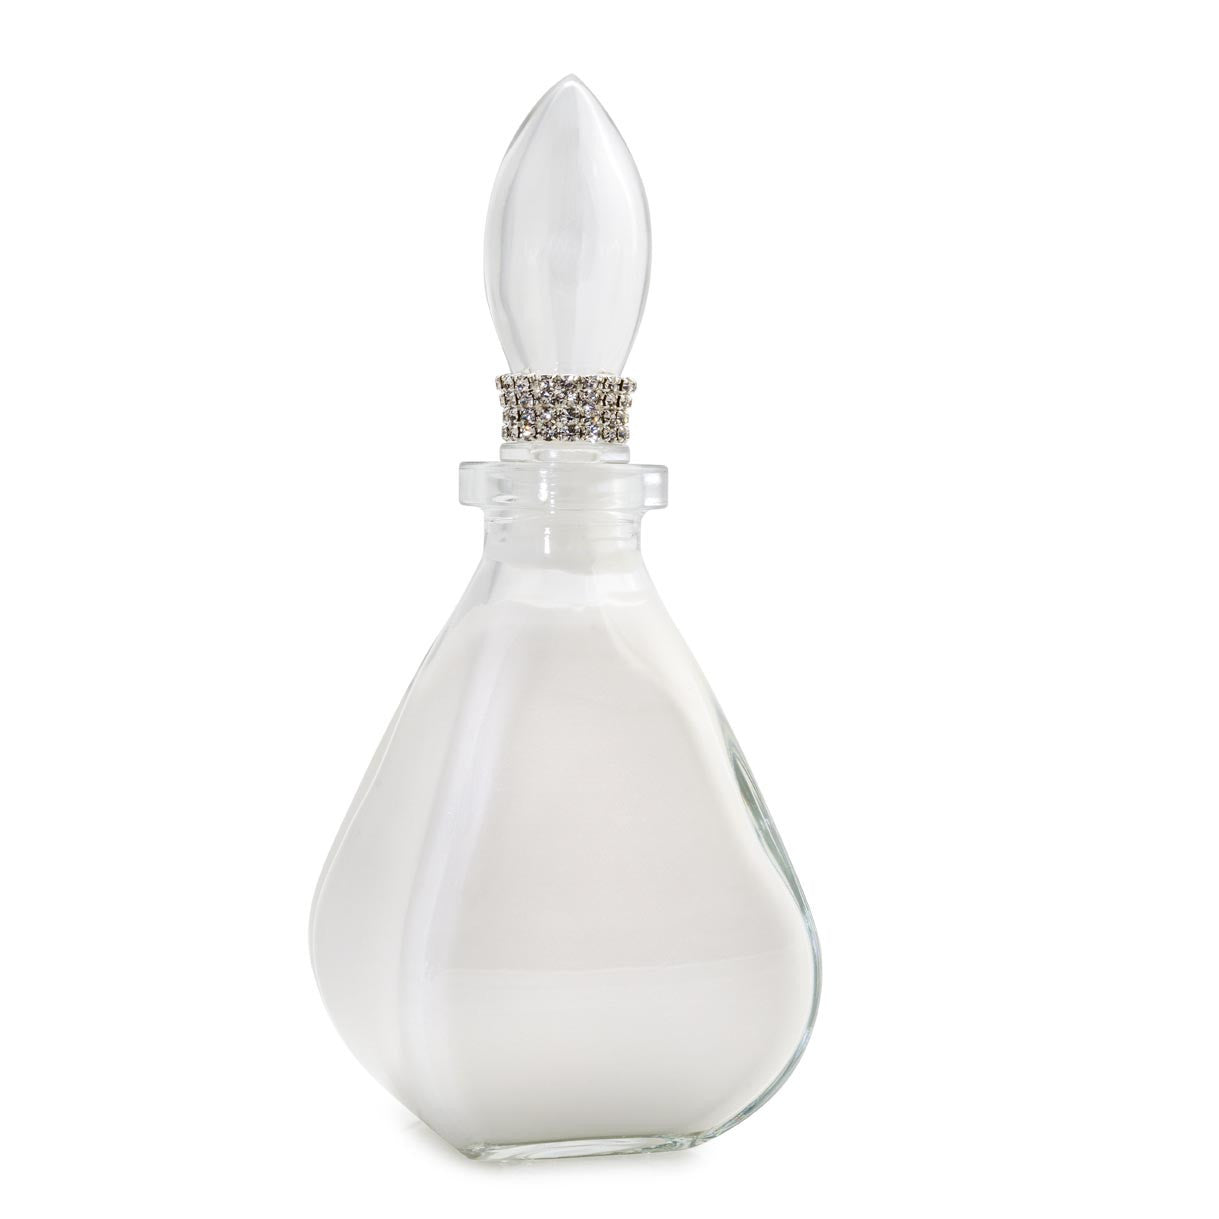 Tryst Body Velvet Decanter -  Bath Products - Lady Primrose - Putti Fine Furnishings Toronto Canada